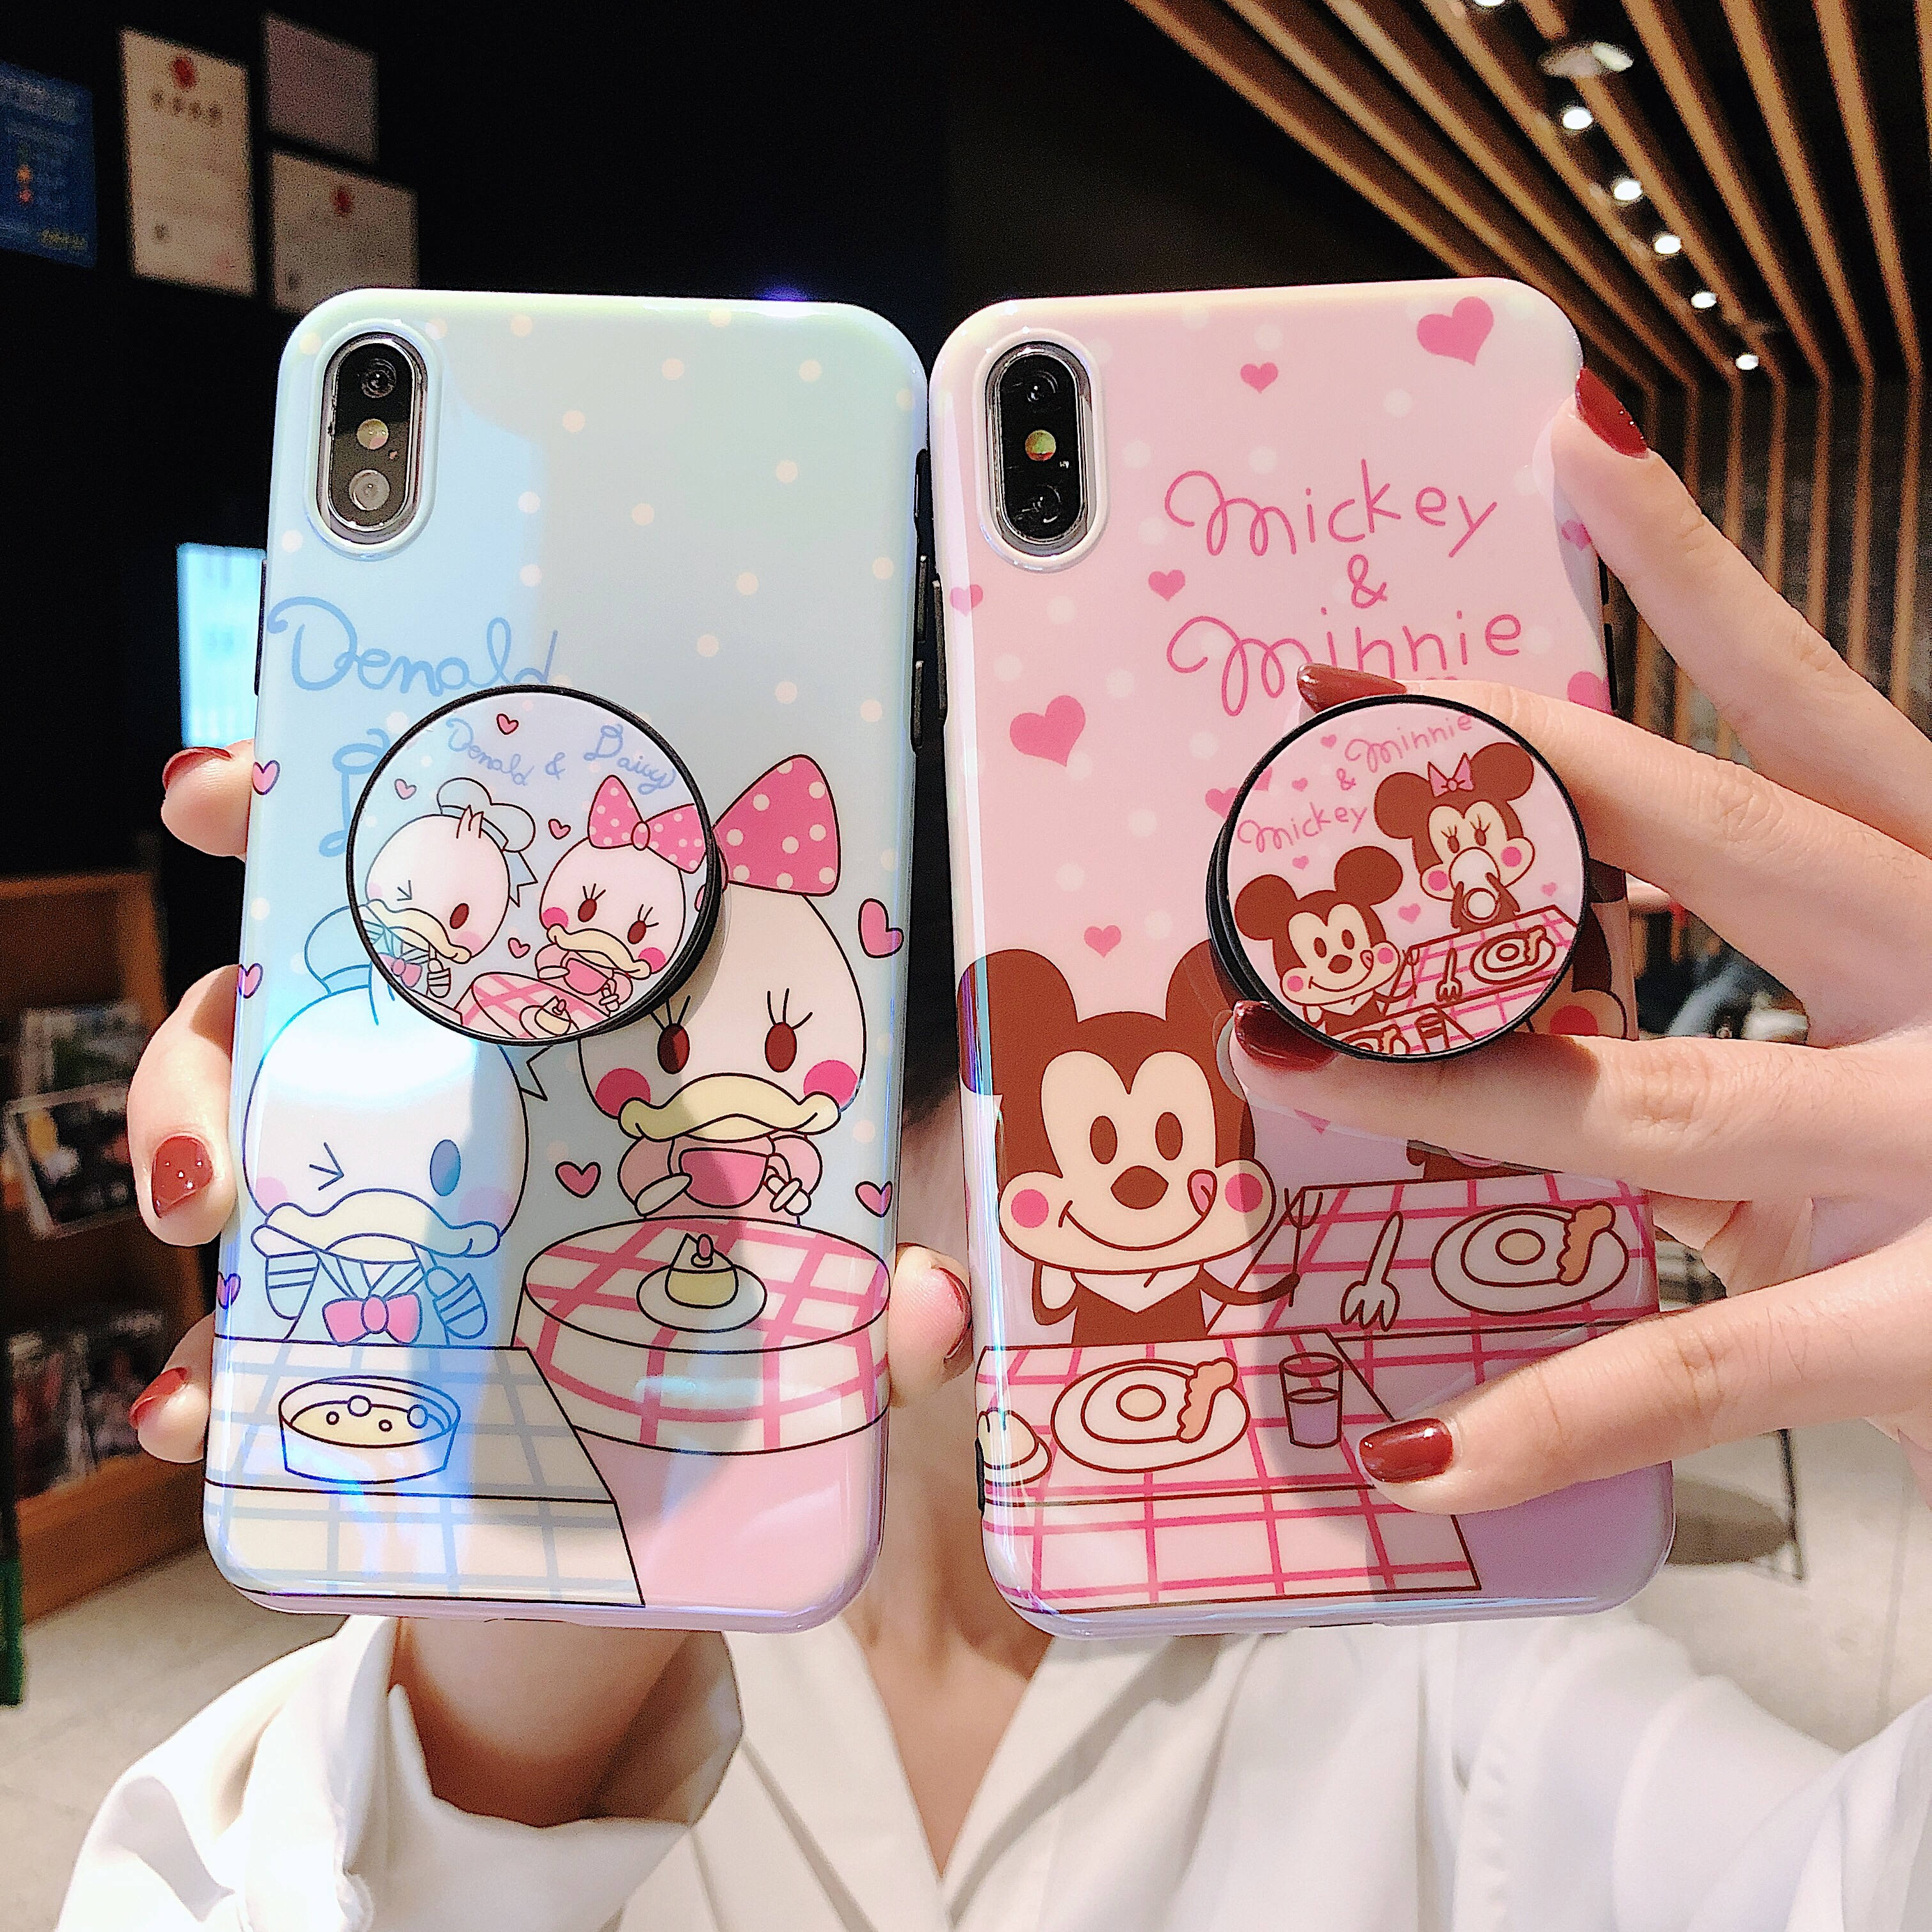 Loverly Cute Cartoon <font><b>Mouse</b></font> Duck <font><b>Case</b></font> For <font><b>iPhone</b></font> X <font><b>8</b></font> 7 6 6s plus 10 11 Pro XS Max XR Grip Holder i8P Phone <font><b>Cases</b></font> Back Cover Coque image